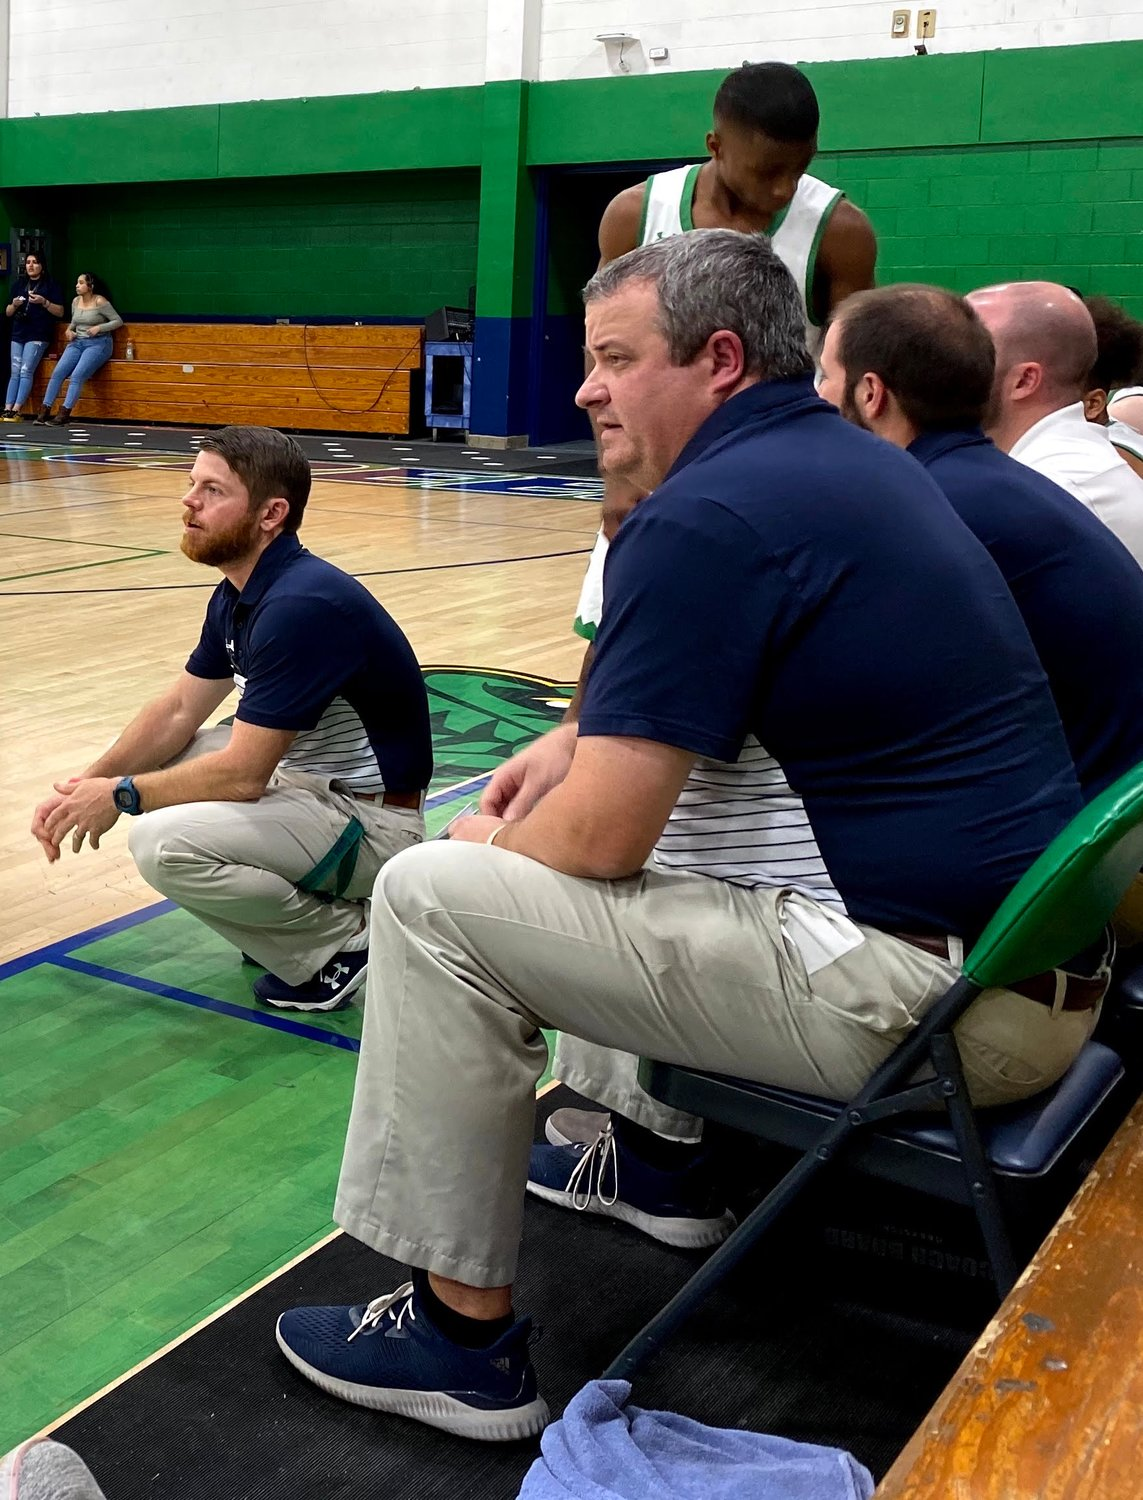 Taylor Jones, squatting, resigned as head varsity boys' basketball coach at Spring Creek. Jones guided the Gators to 135 victories in 12 seasons.